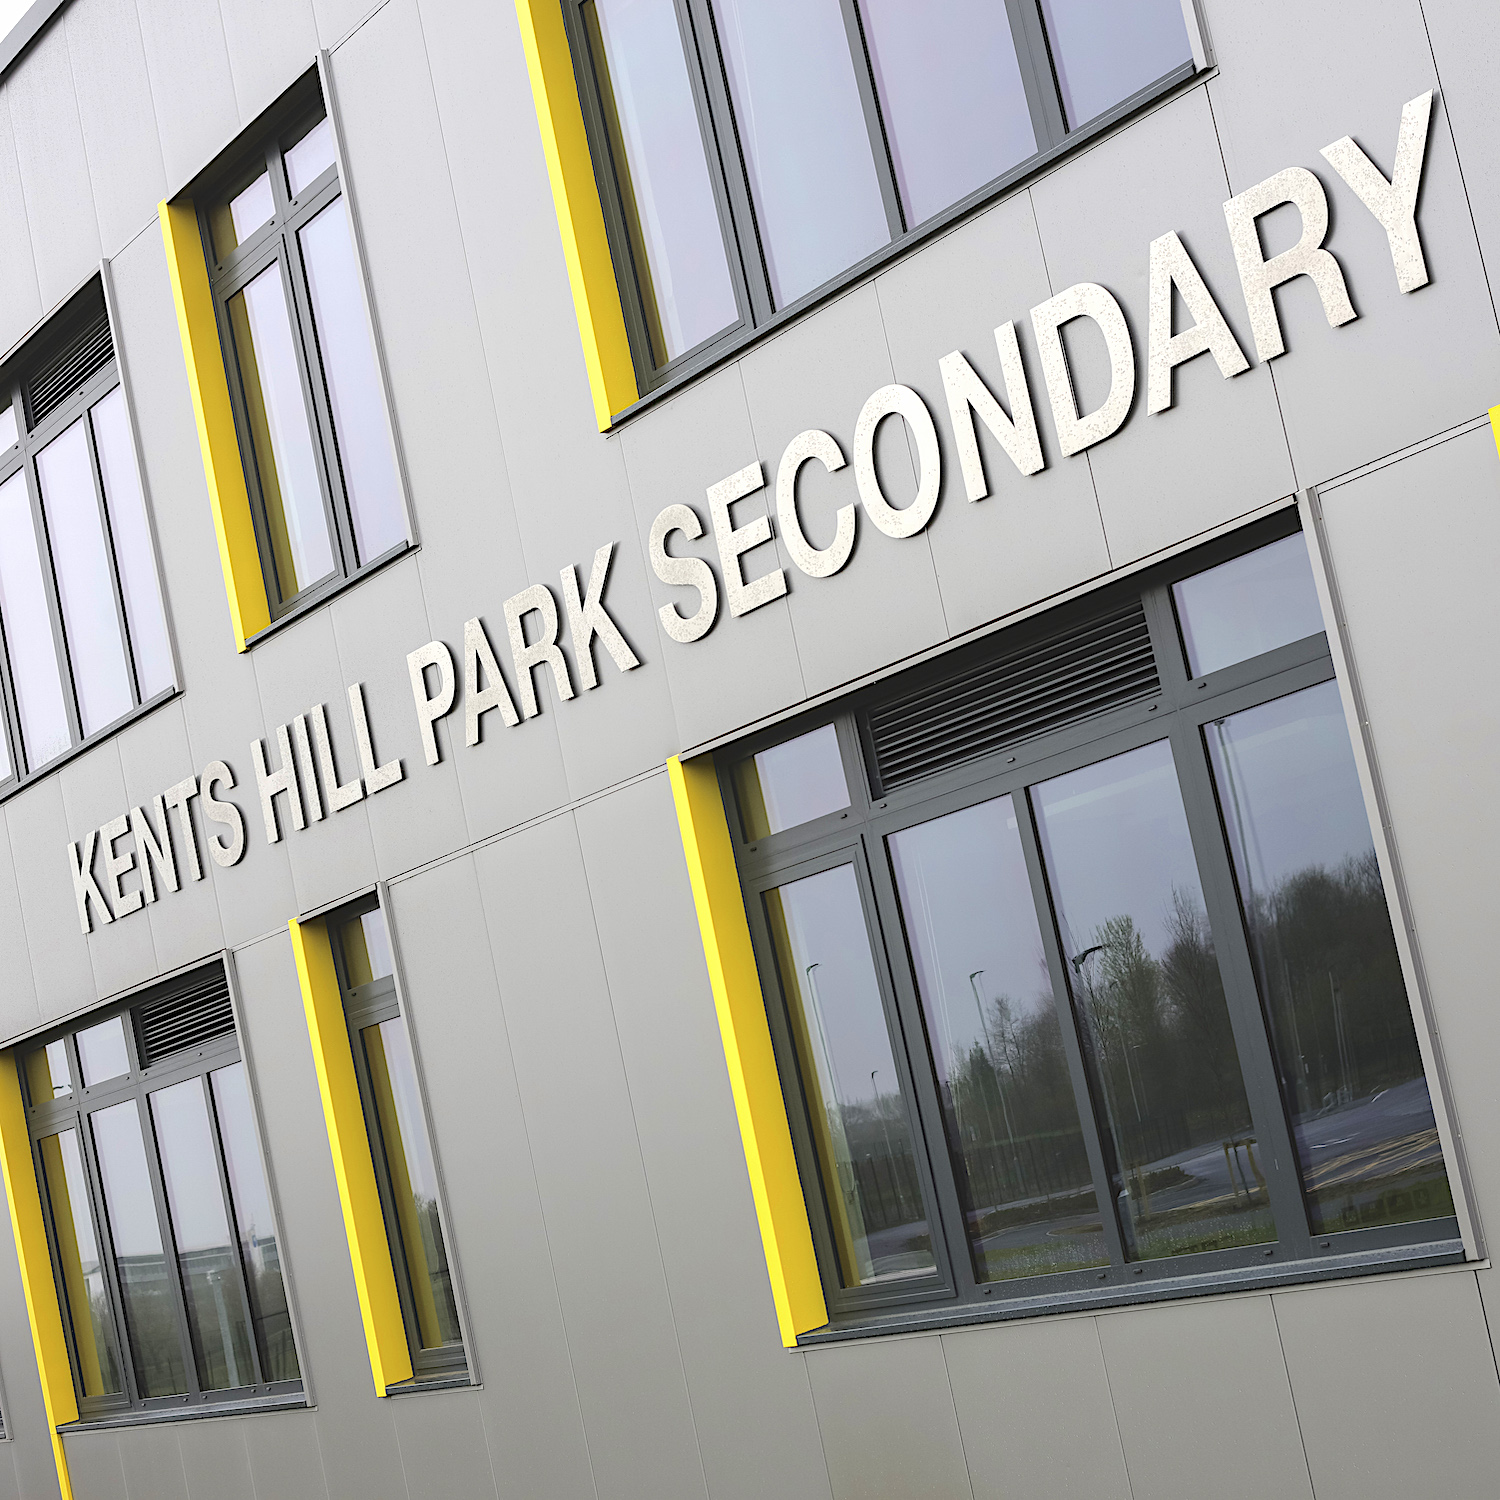 Kents Hill Park Secondary School, Milton Keynes